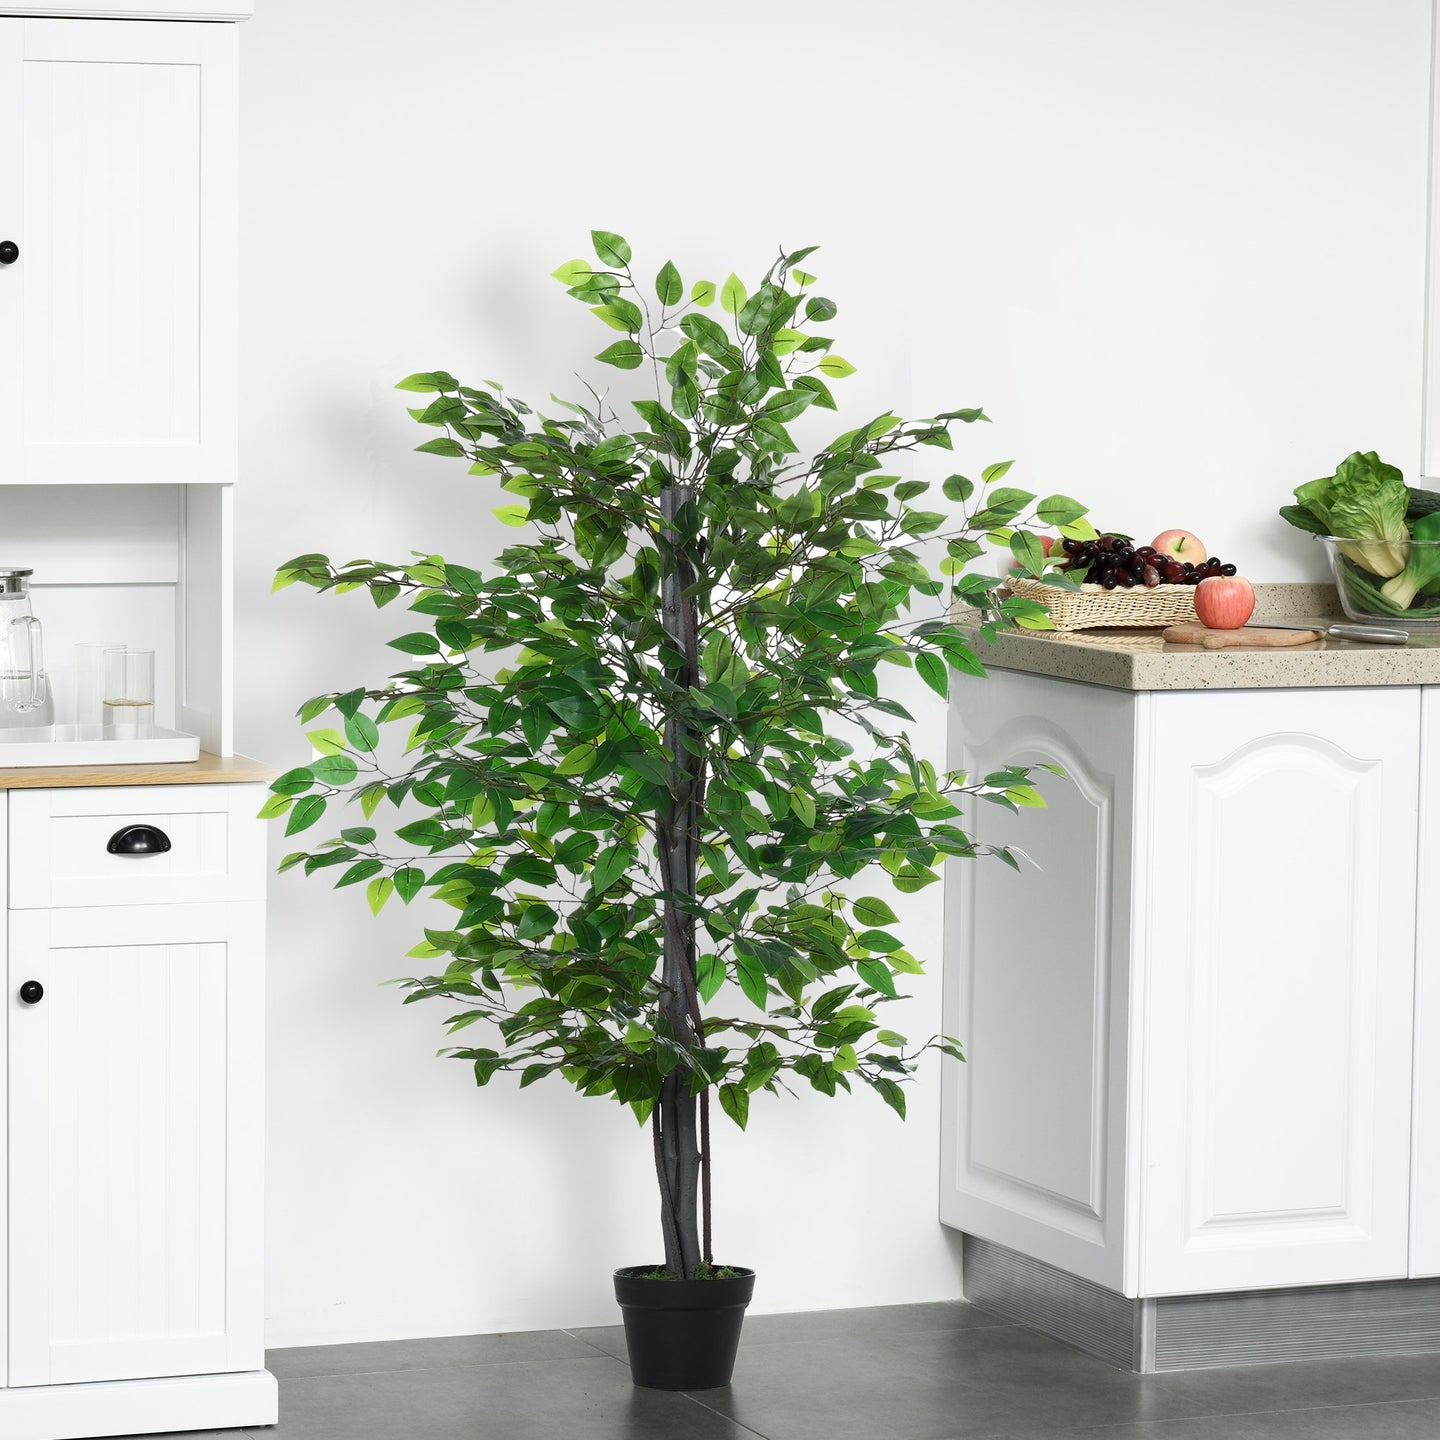 Outsunny Artificial Banyan Decorative Plant with Nursery Pot, Fake Tree for Indoor Outdoor Décor, Green, 1.45m